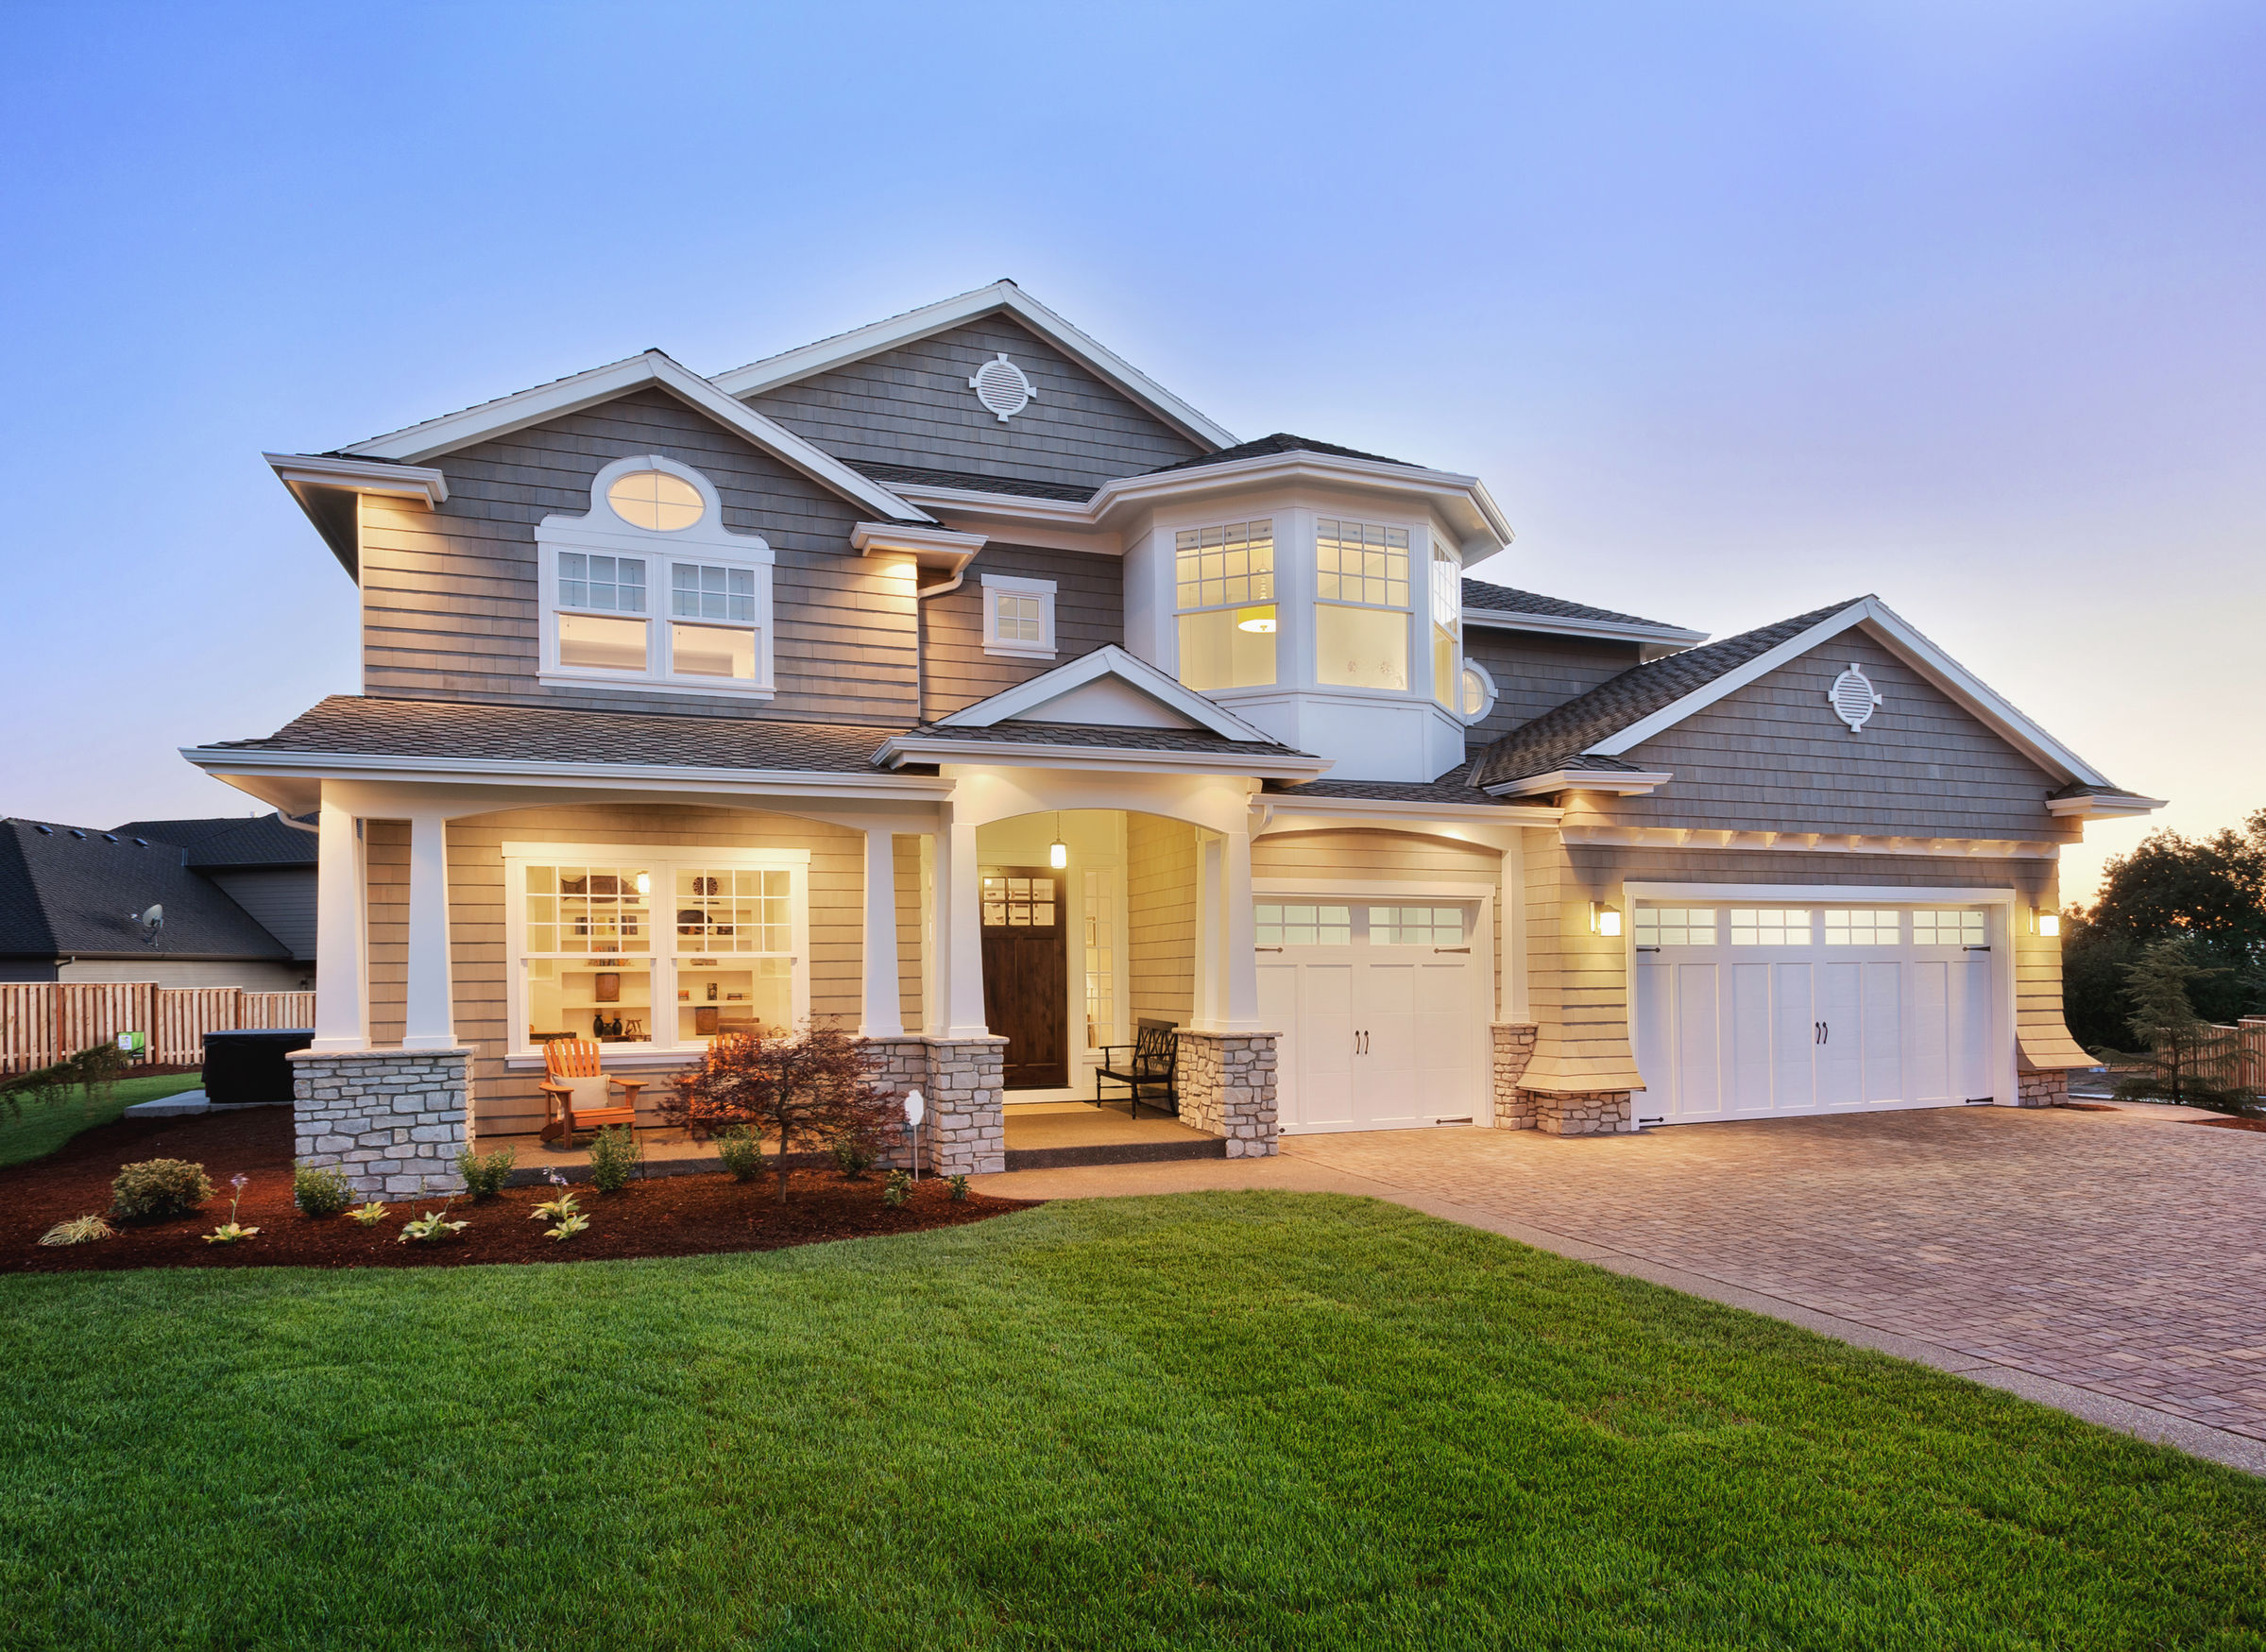 53600574 - home exterior at night/twilight with beautiful green grass three-car garage, and driveway